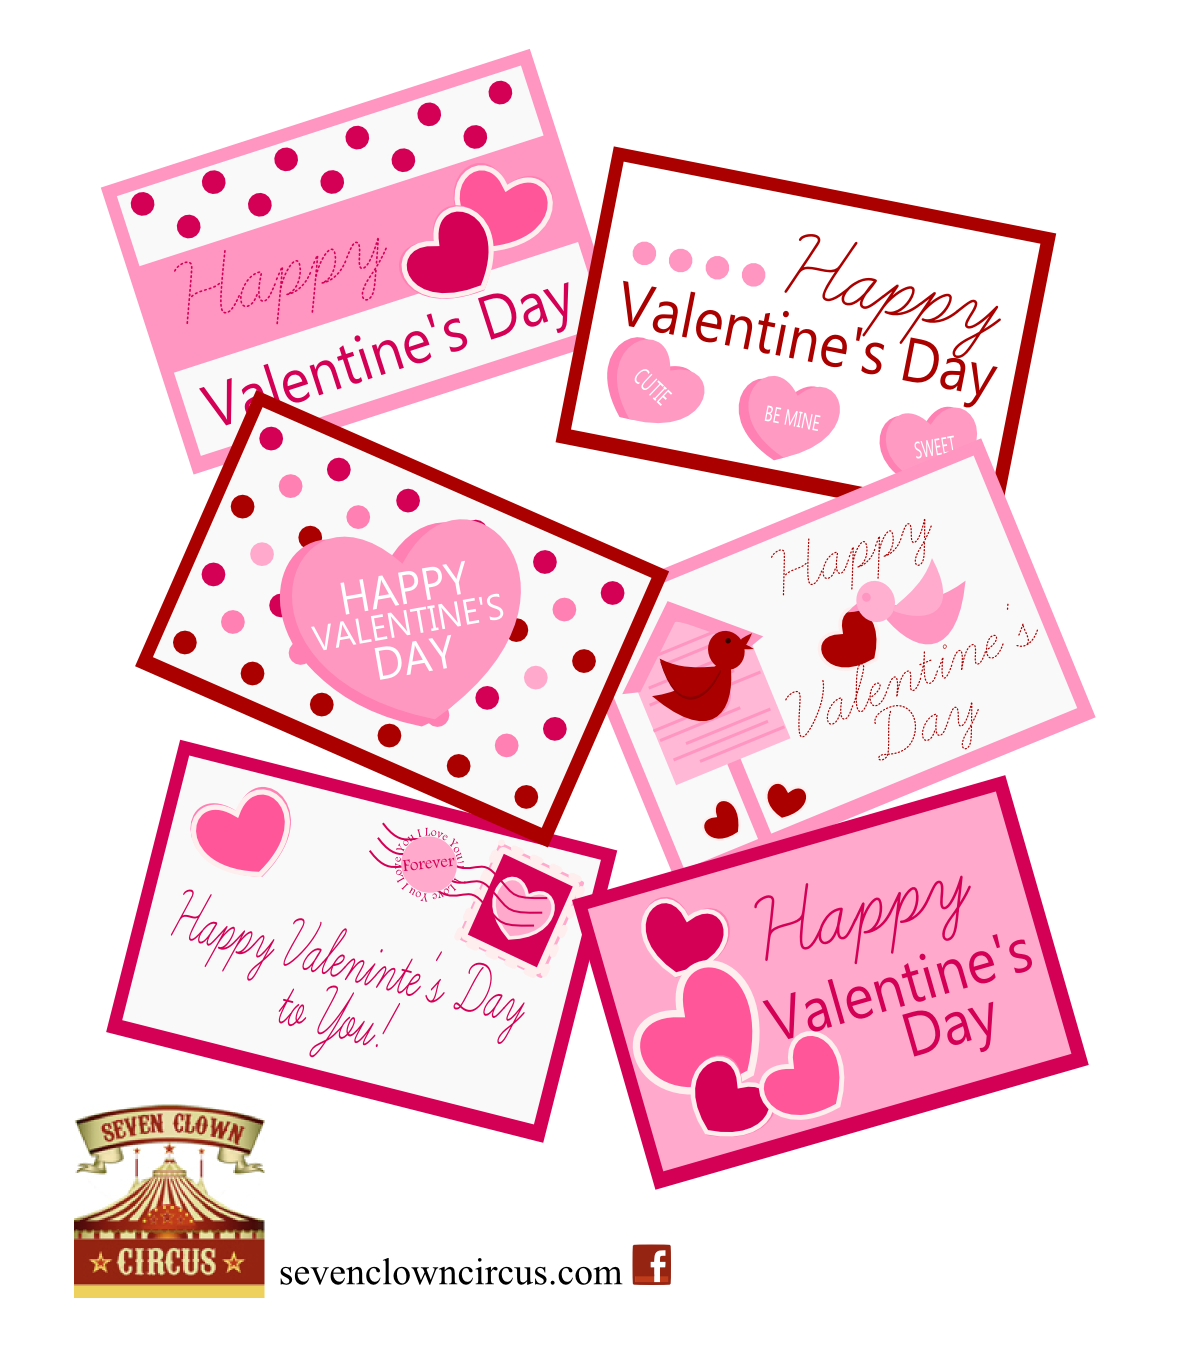 image regarding Printable Teacher Valentine Cards Free titled Free of charge Printable Valentines Playing cards For Lecturers. Printable